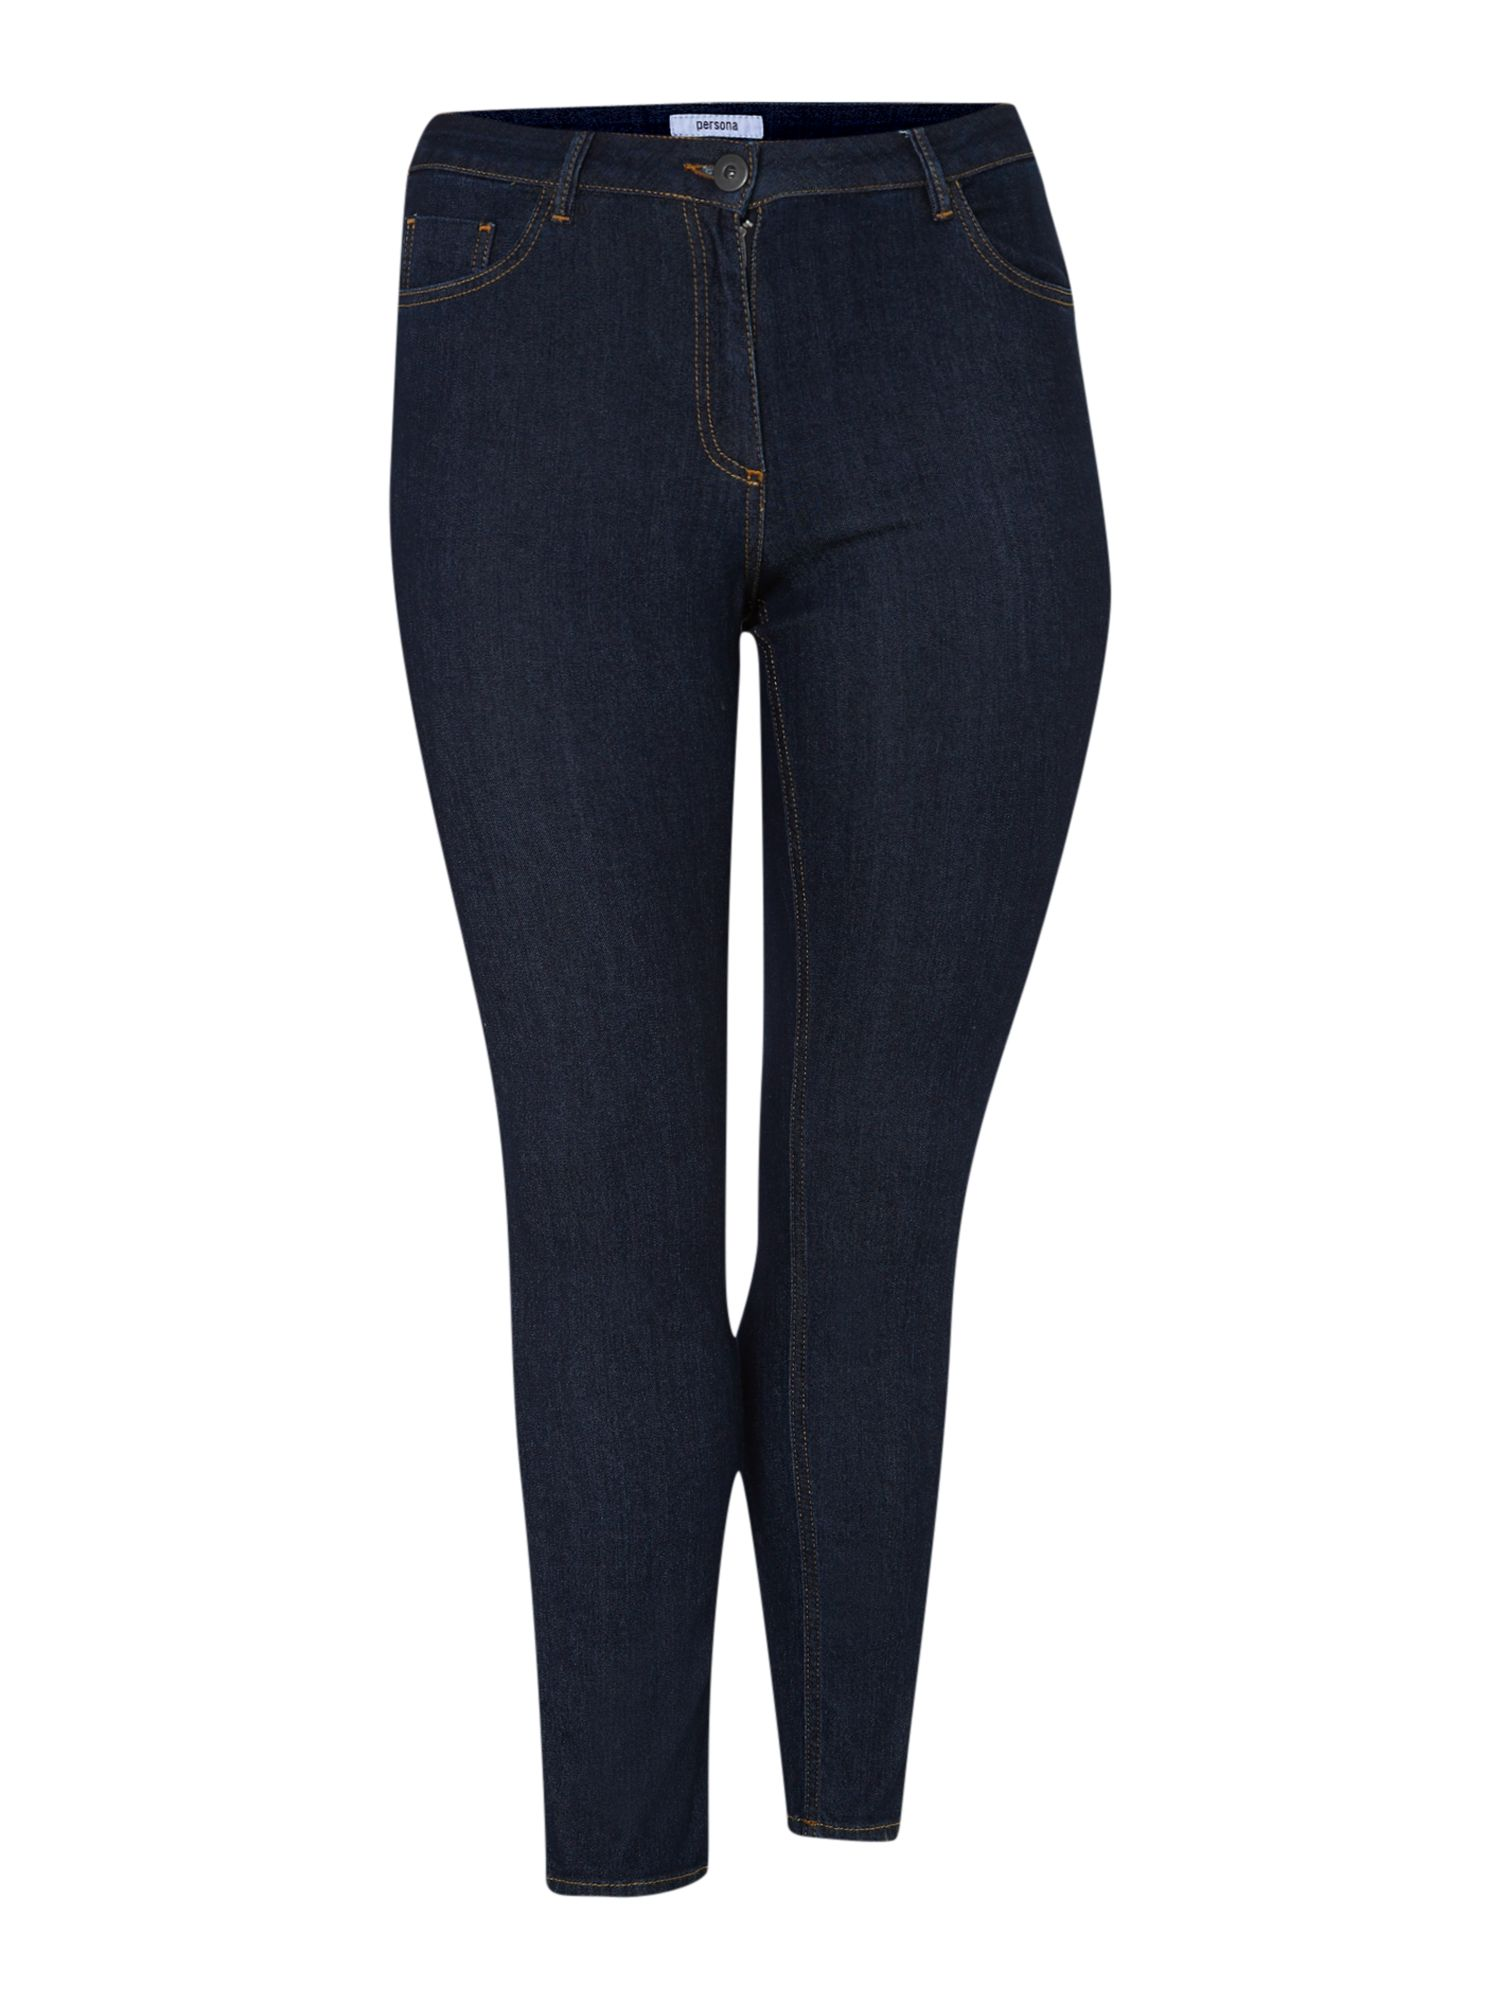 Iesolo shaping slim leg jean